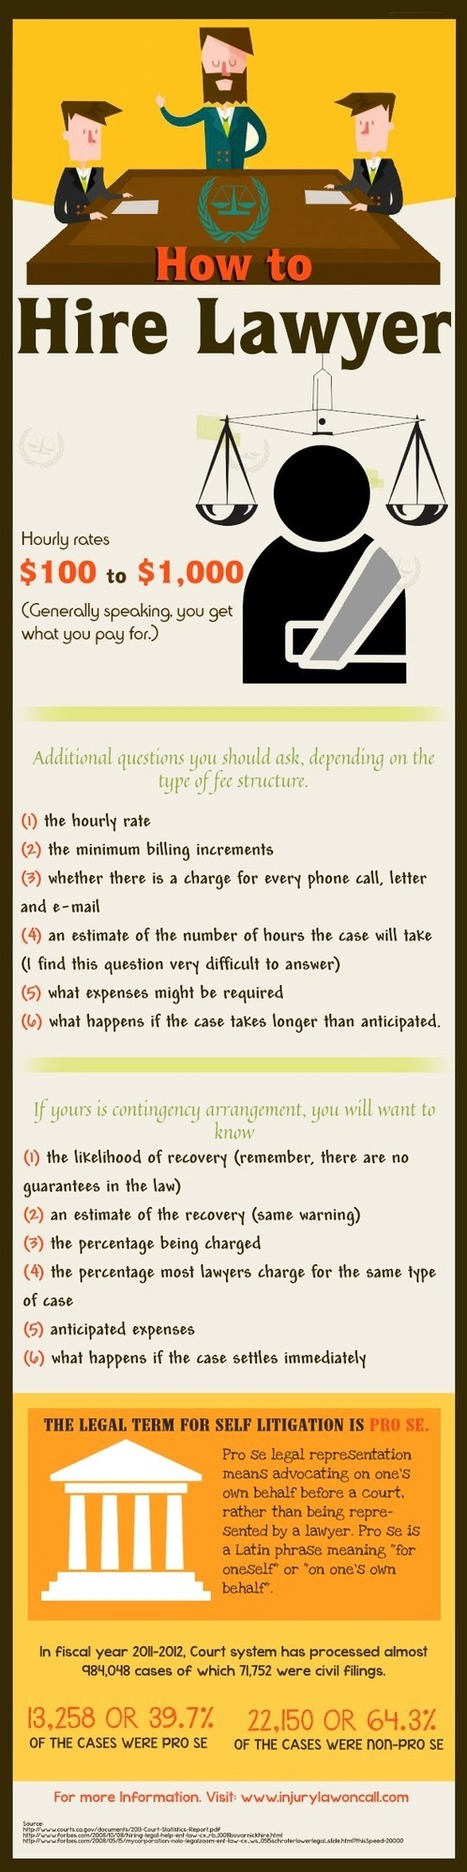 How_to_Hire_a_Lawyer.png (587x2353 pixels) | How To Hire A Lawyer | Scoop.it